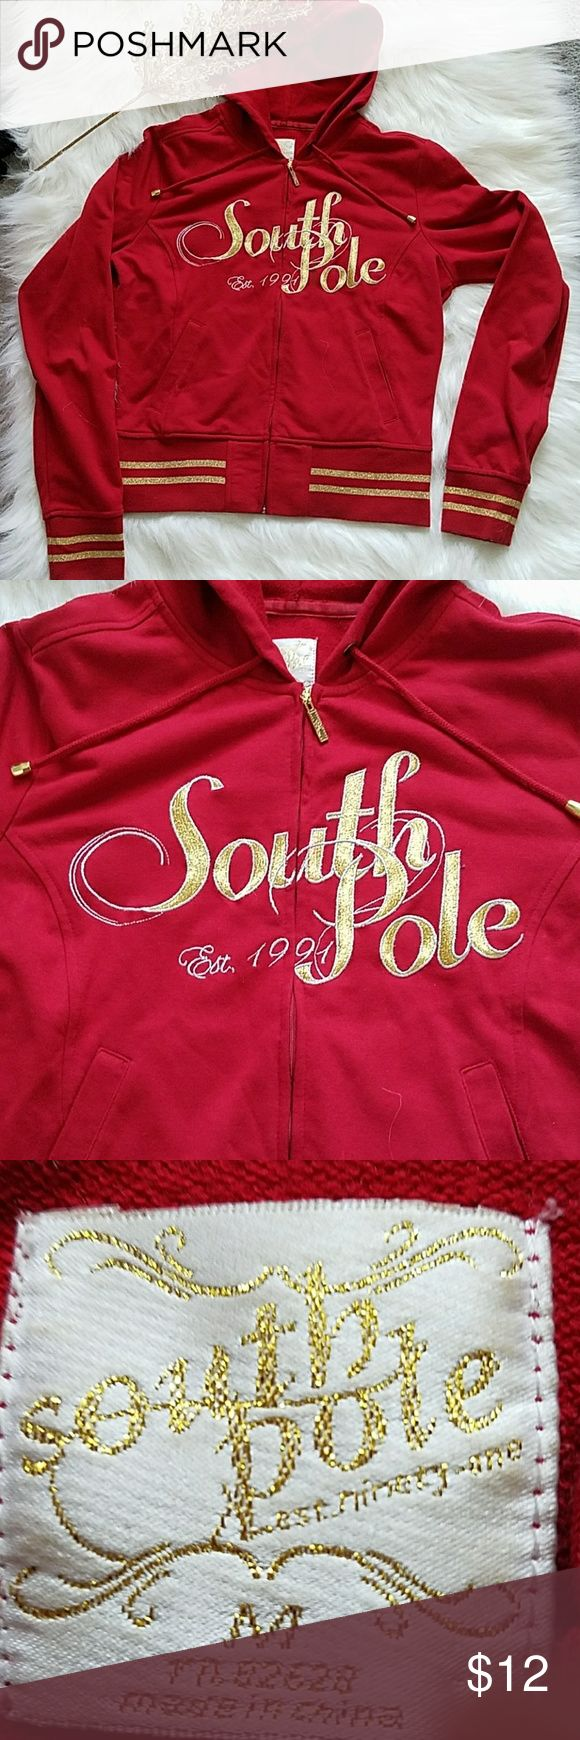 South Pole women girls red gold zip up jacket This is a South Pole women girls red and gold zip up jacket. It has drawstrings around the neck. It has two pockets in the front. It has a wonderful size hood on the back of it. The Hem of the sleeves fit the wrist comfortably snug. From the neck to the bottom Hem of this jacket is about 20 inches in length. This jacket is worn more for dressy fashion. South Pole Jackets & Coats